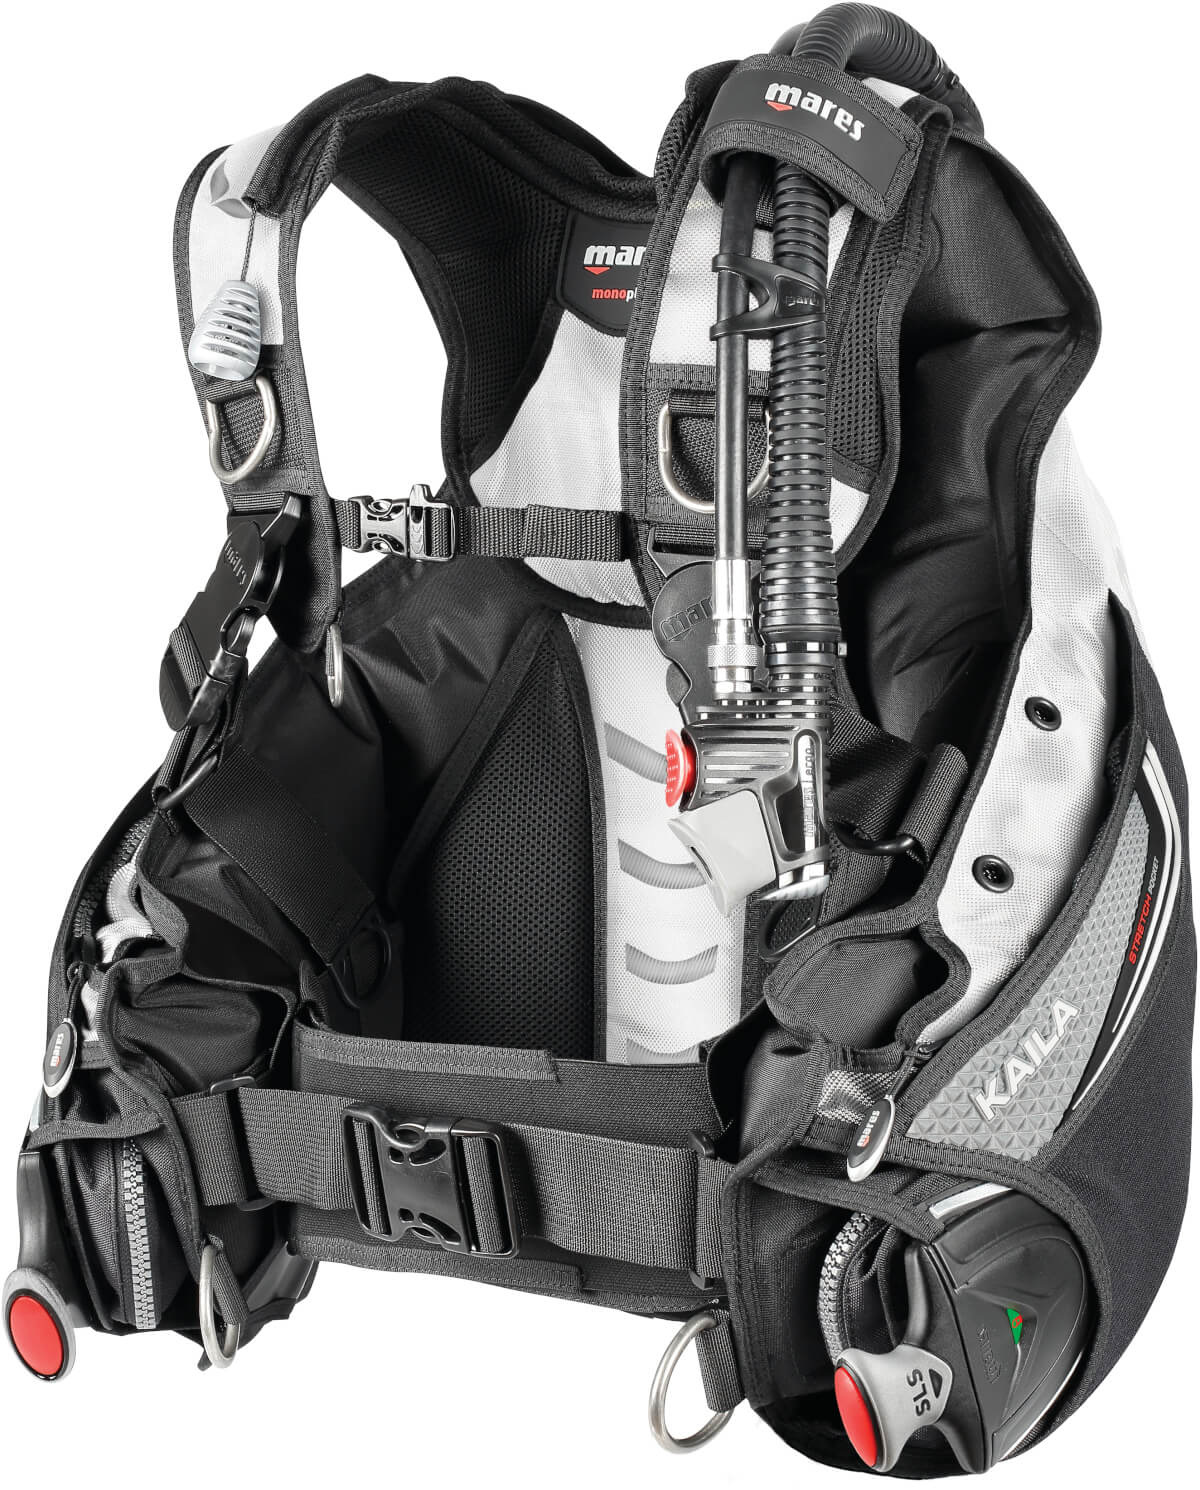 Mares Dry Bag Size Choice